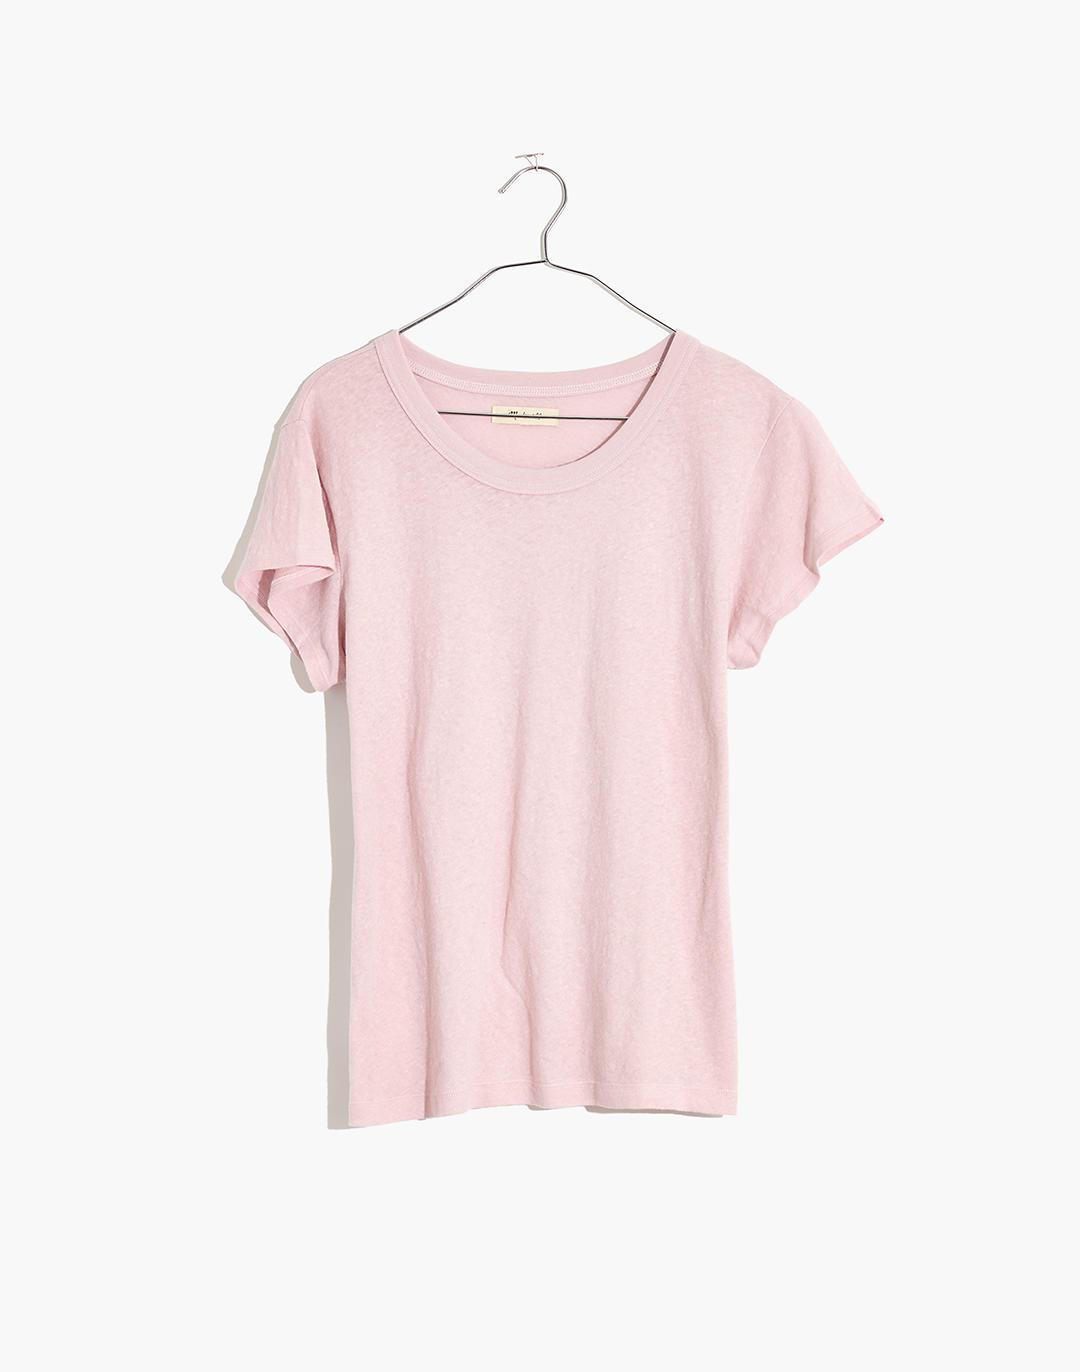 The Perfect Vintage Tee 3